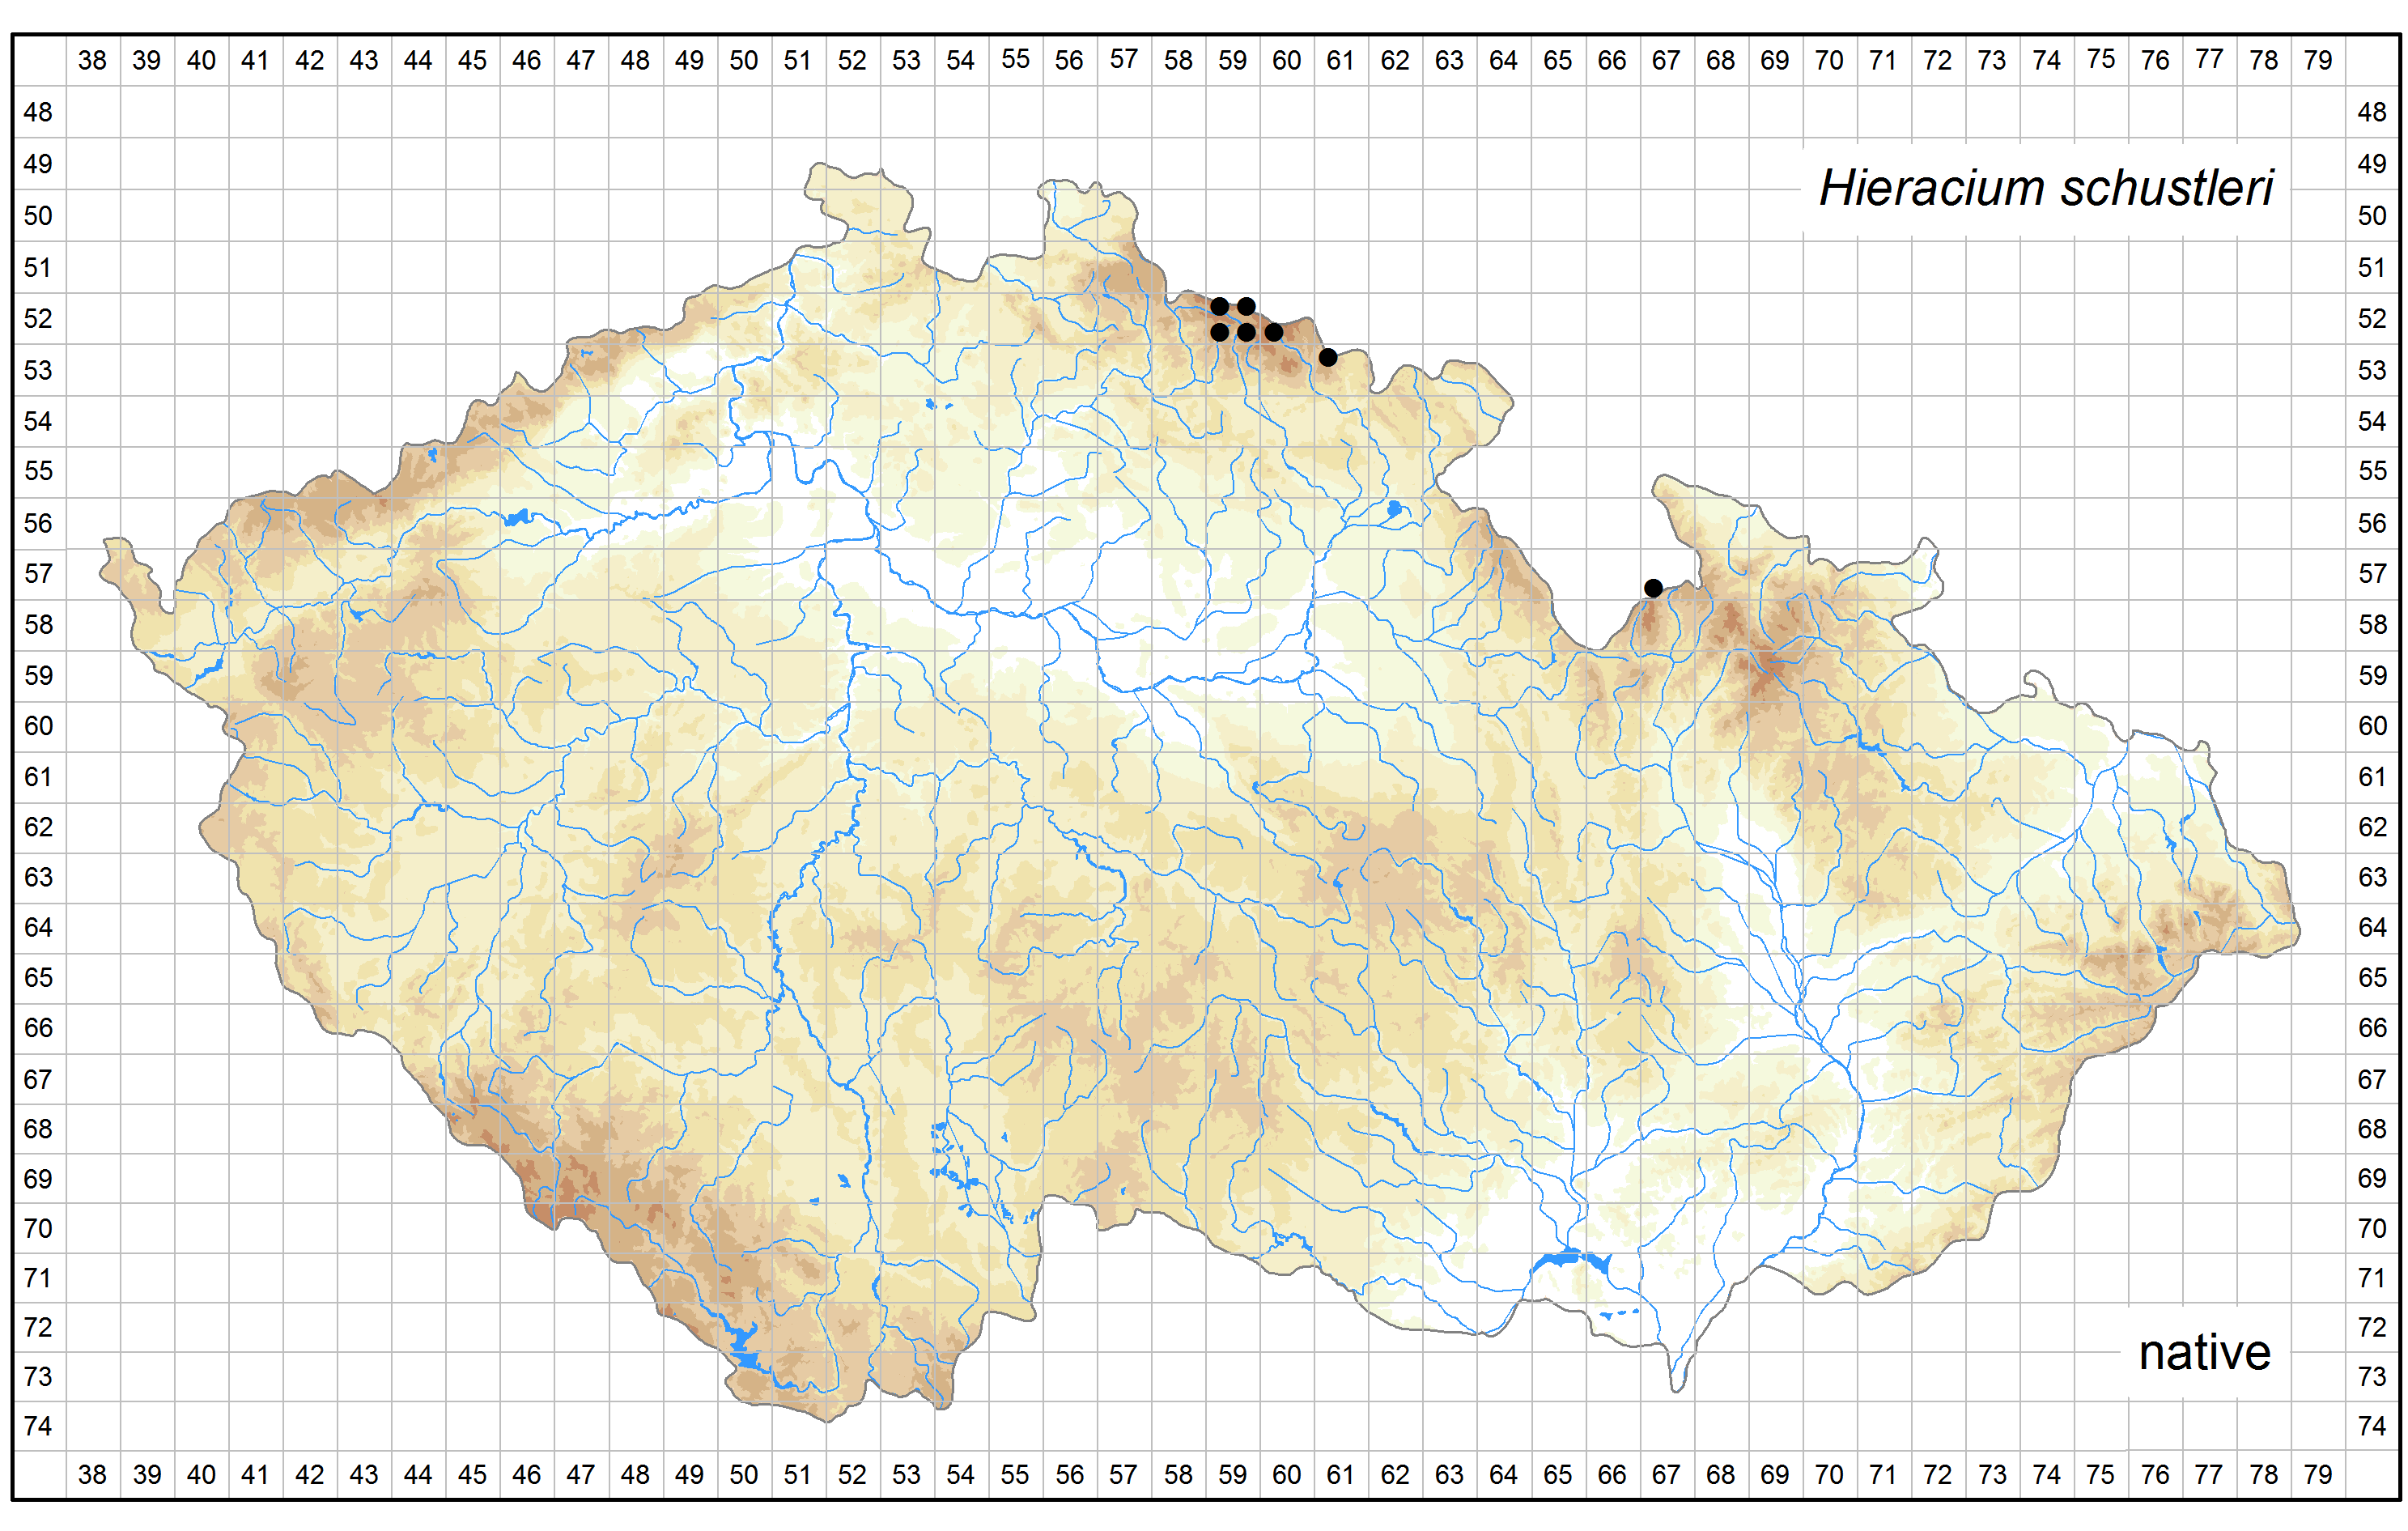 Distribution of Hieracium schustleri in the Czech Republic Author of the map: Jindřich Chrtek Map produced on: 11-11-2016 Database records used for producing the distribution map of Hieracium